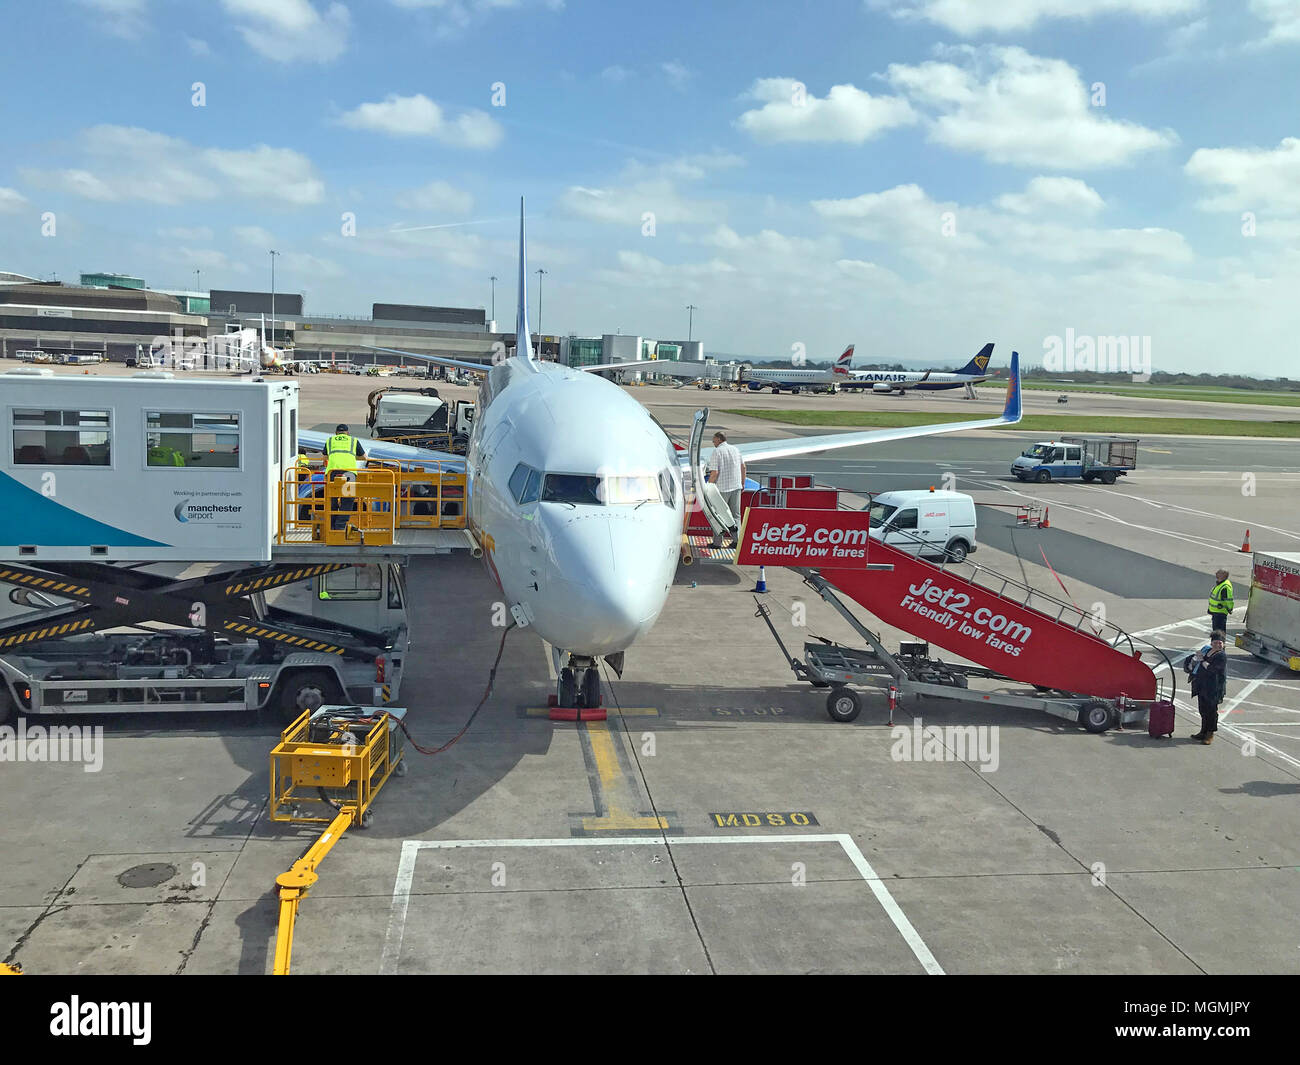 GoTonySmith,holiday,flight,apron,aircraft,at,Ringway,airport,International,refueling,at gate,gate,loading,boarding,Friendly Low Fares,travel,transportation,white,base,bases,jet,jets,ATOL,ABTA,sunny,spring,summer,stairs,load,catering,ground crew,crew,ground,stand,parked,container,containers,luggage